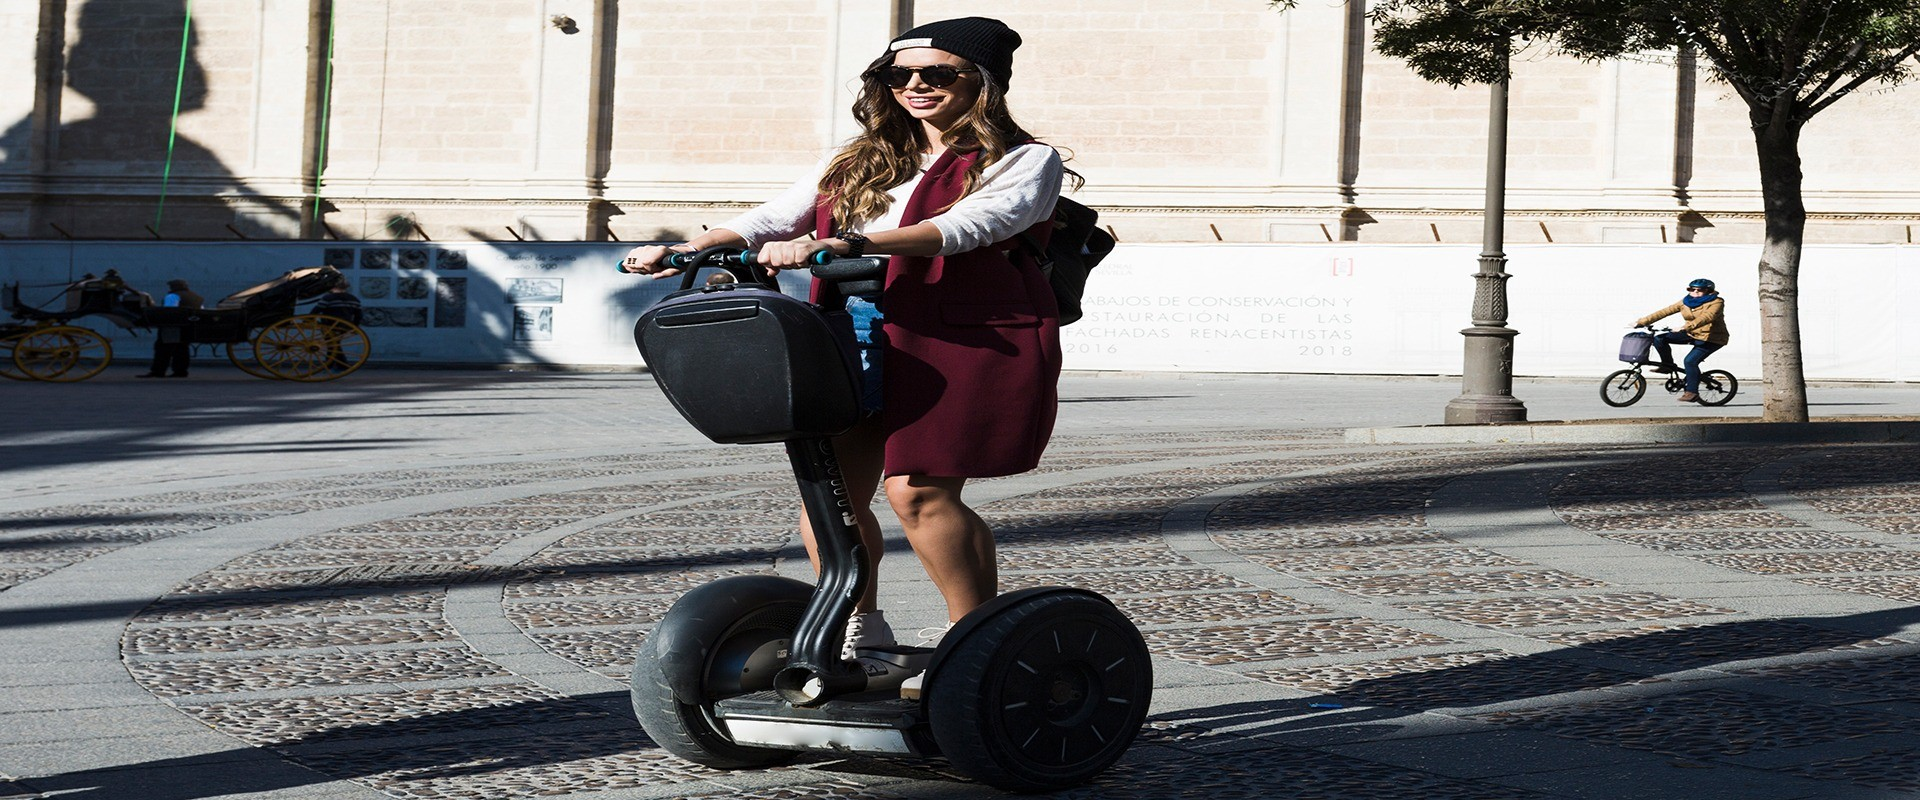 Segway Tour with Holy Land VIP Tours